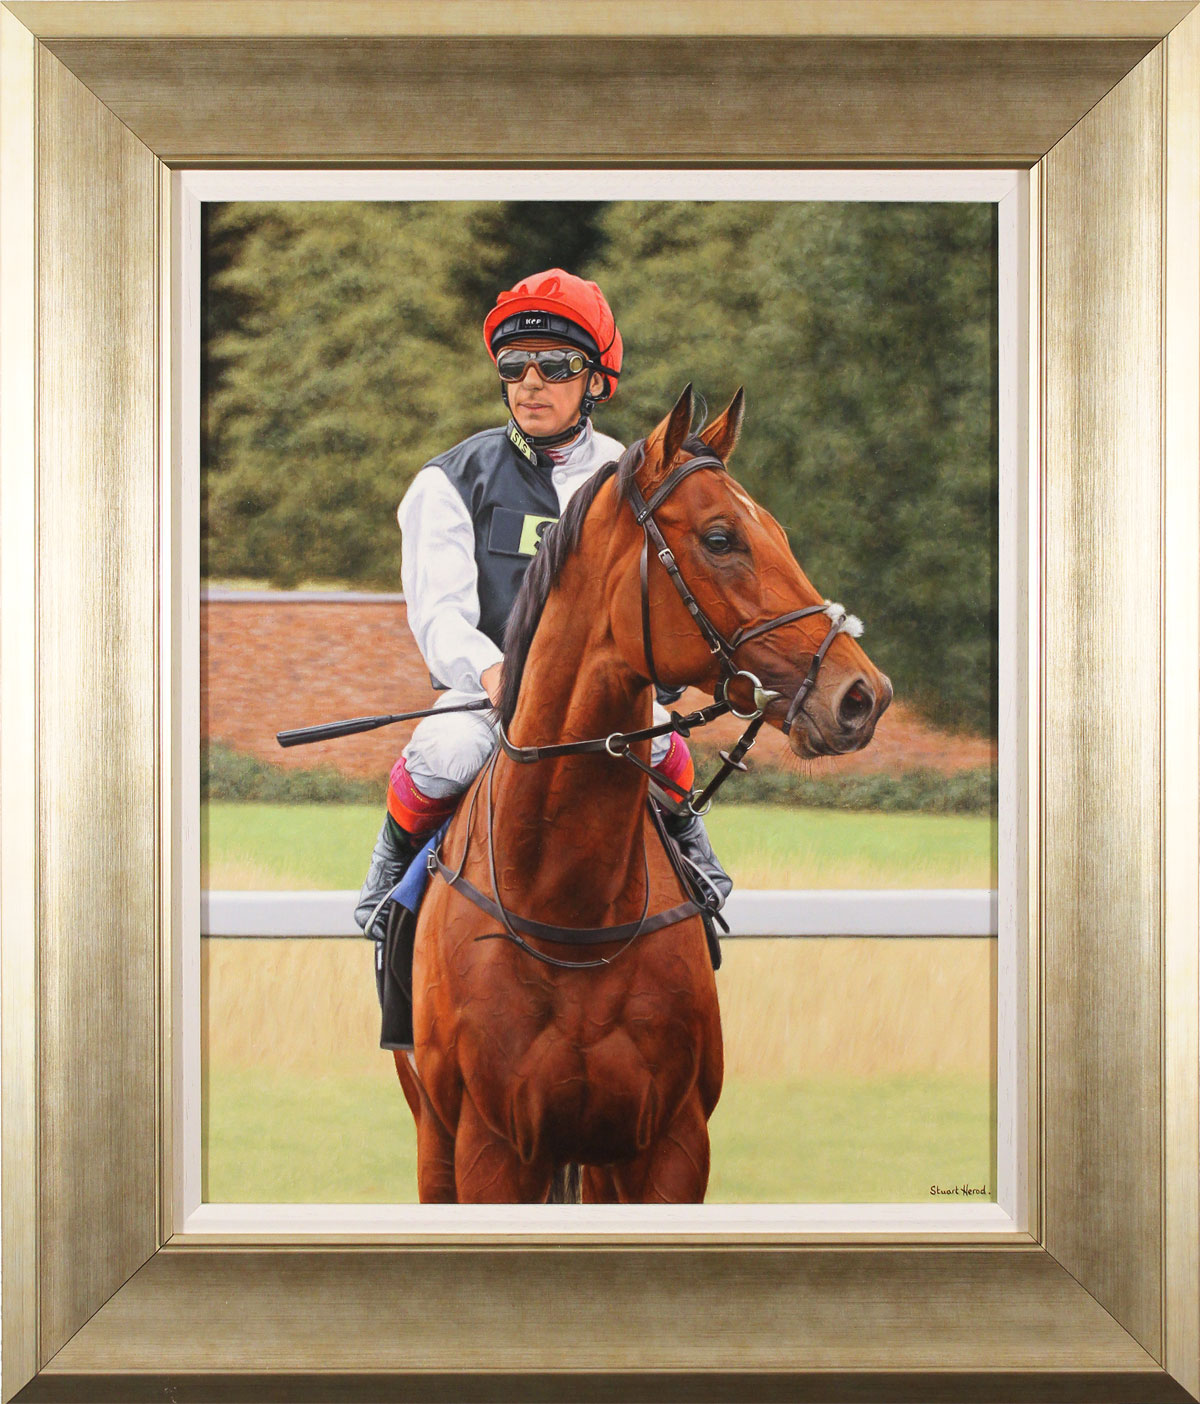 Stuart Herod, Original oil painting on canvas, Cracksman, click to enlarge